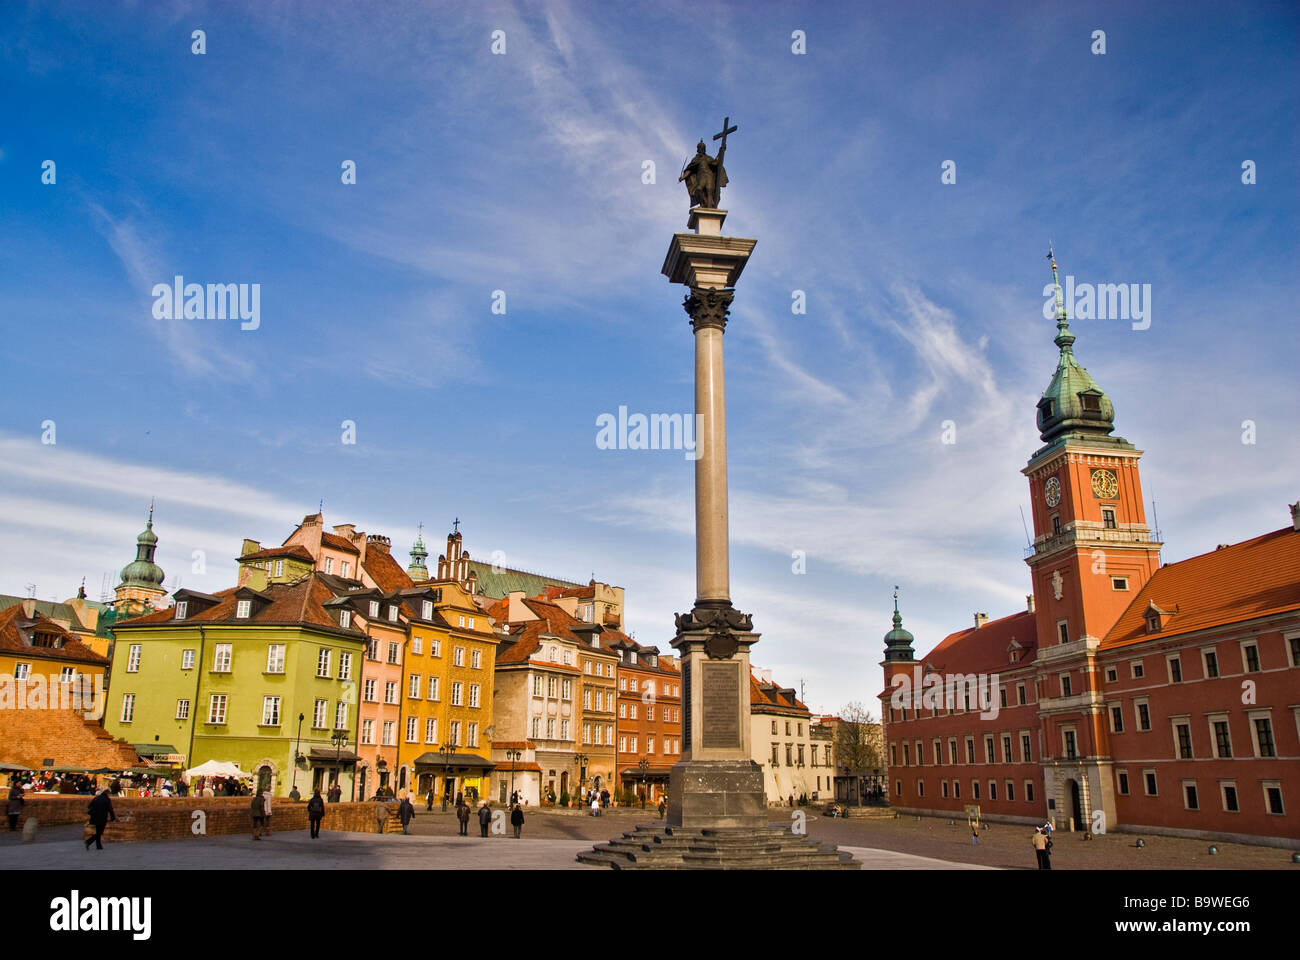 Zygmunt´s column in the Zamkowy square. Warsaw city center. Poland, Europe. - Stock Image